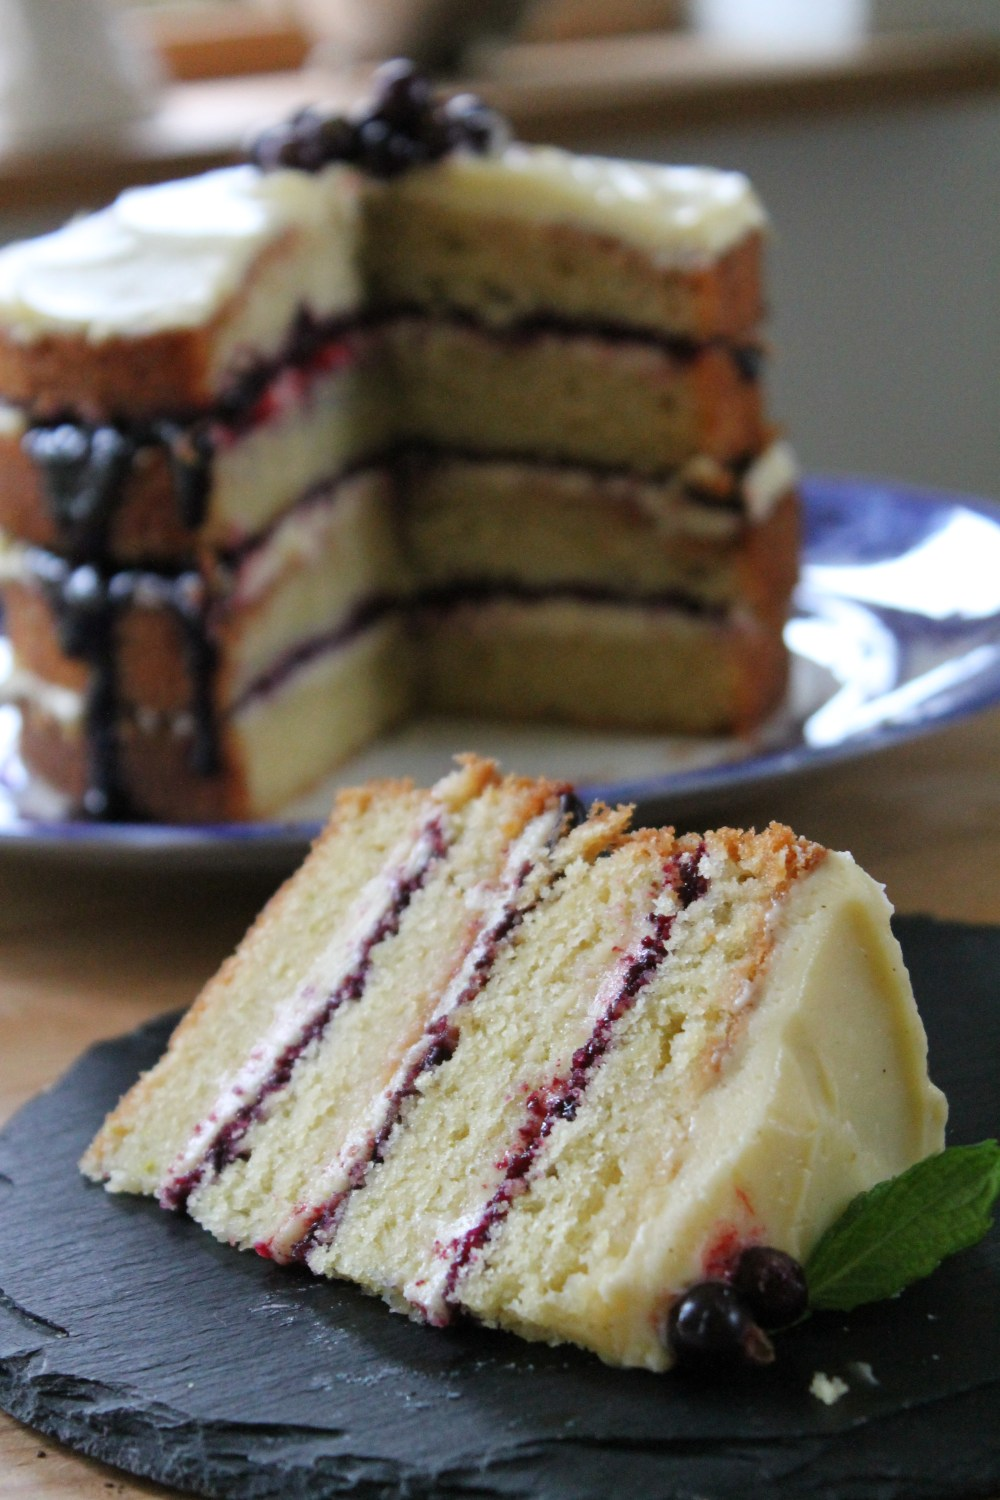 Lime Layer Drizzle with Blackcurrant and White Chocolate